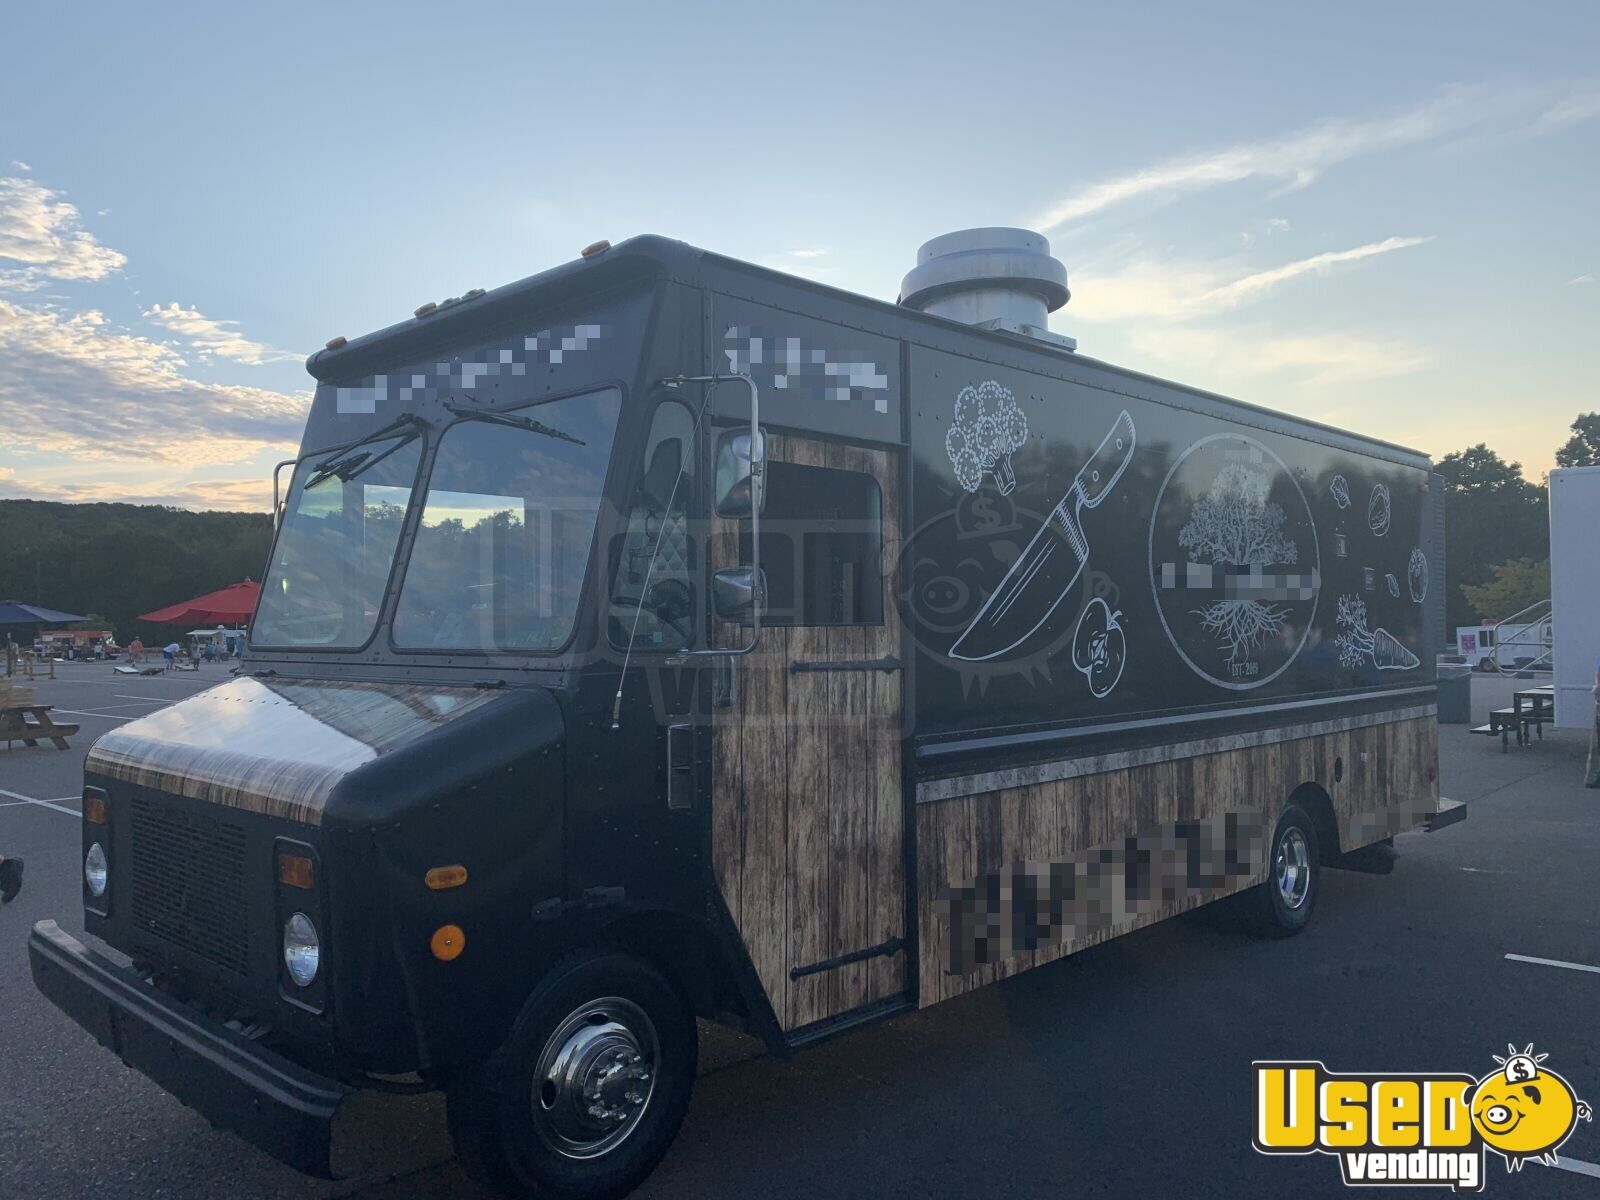 1997 Chevy Workhorse P30 All-purpose Food Truck Concession Window Connecticut Gas Engine for Sale - 3